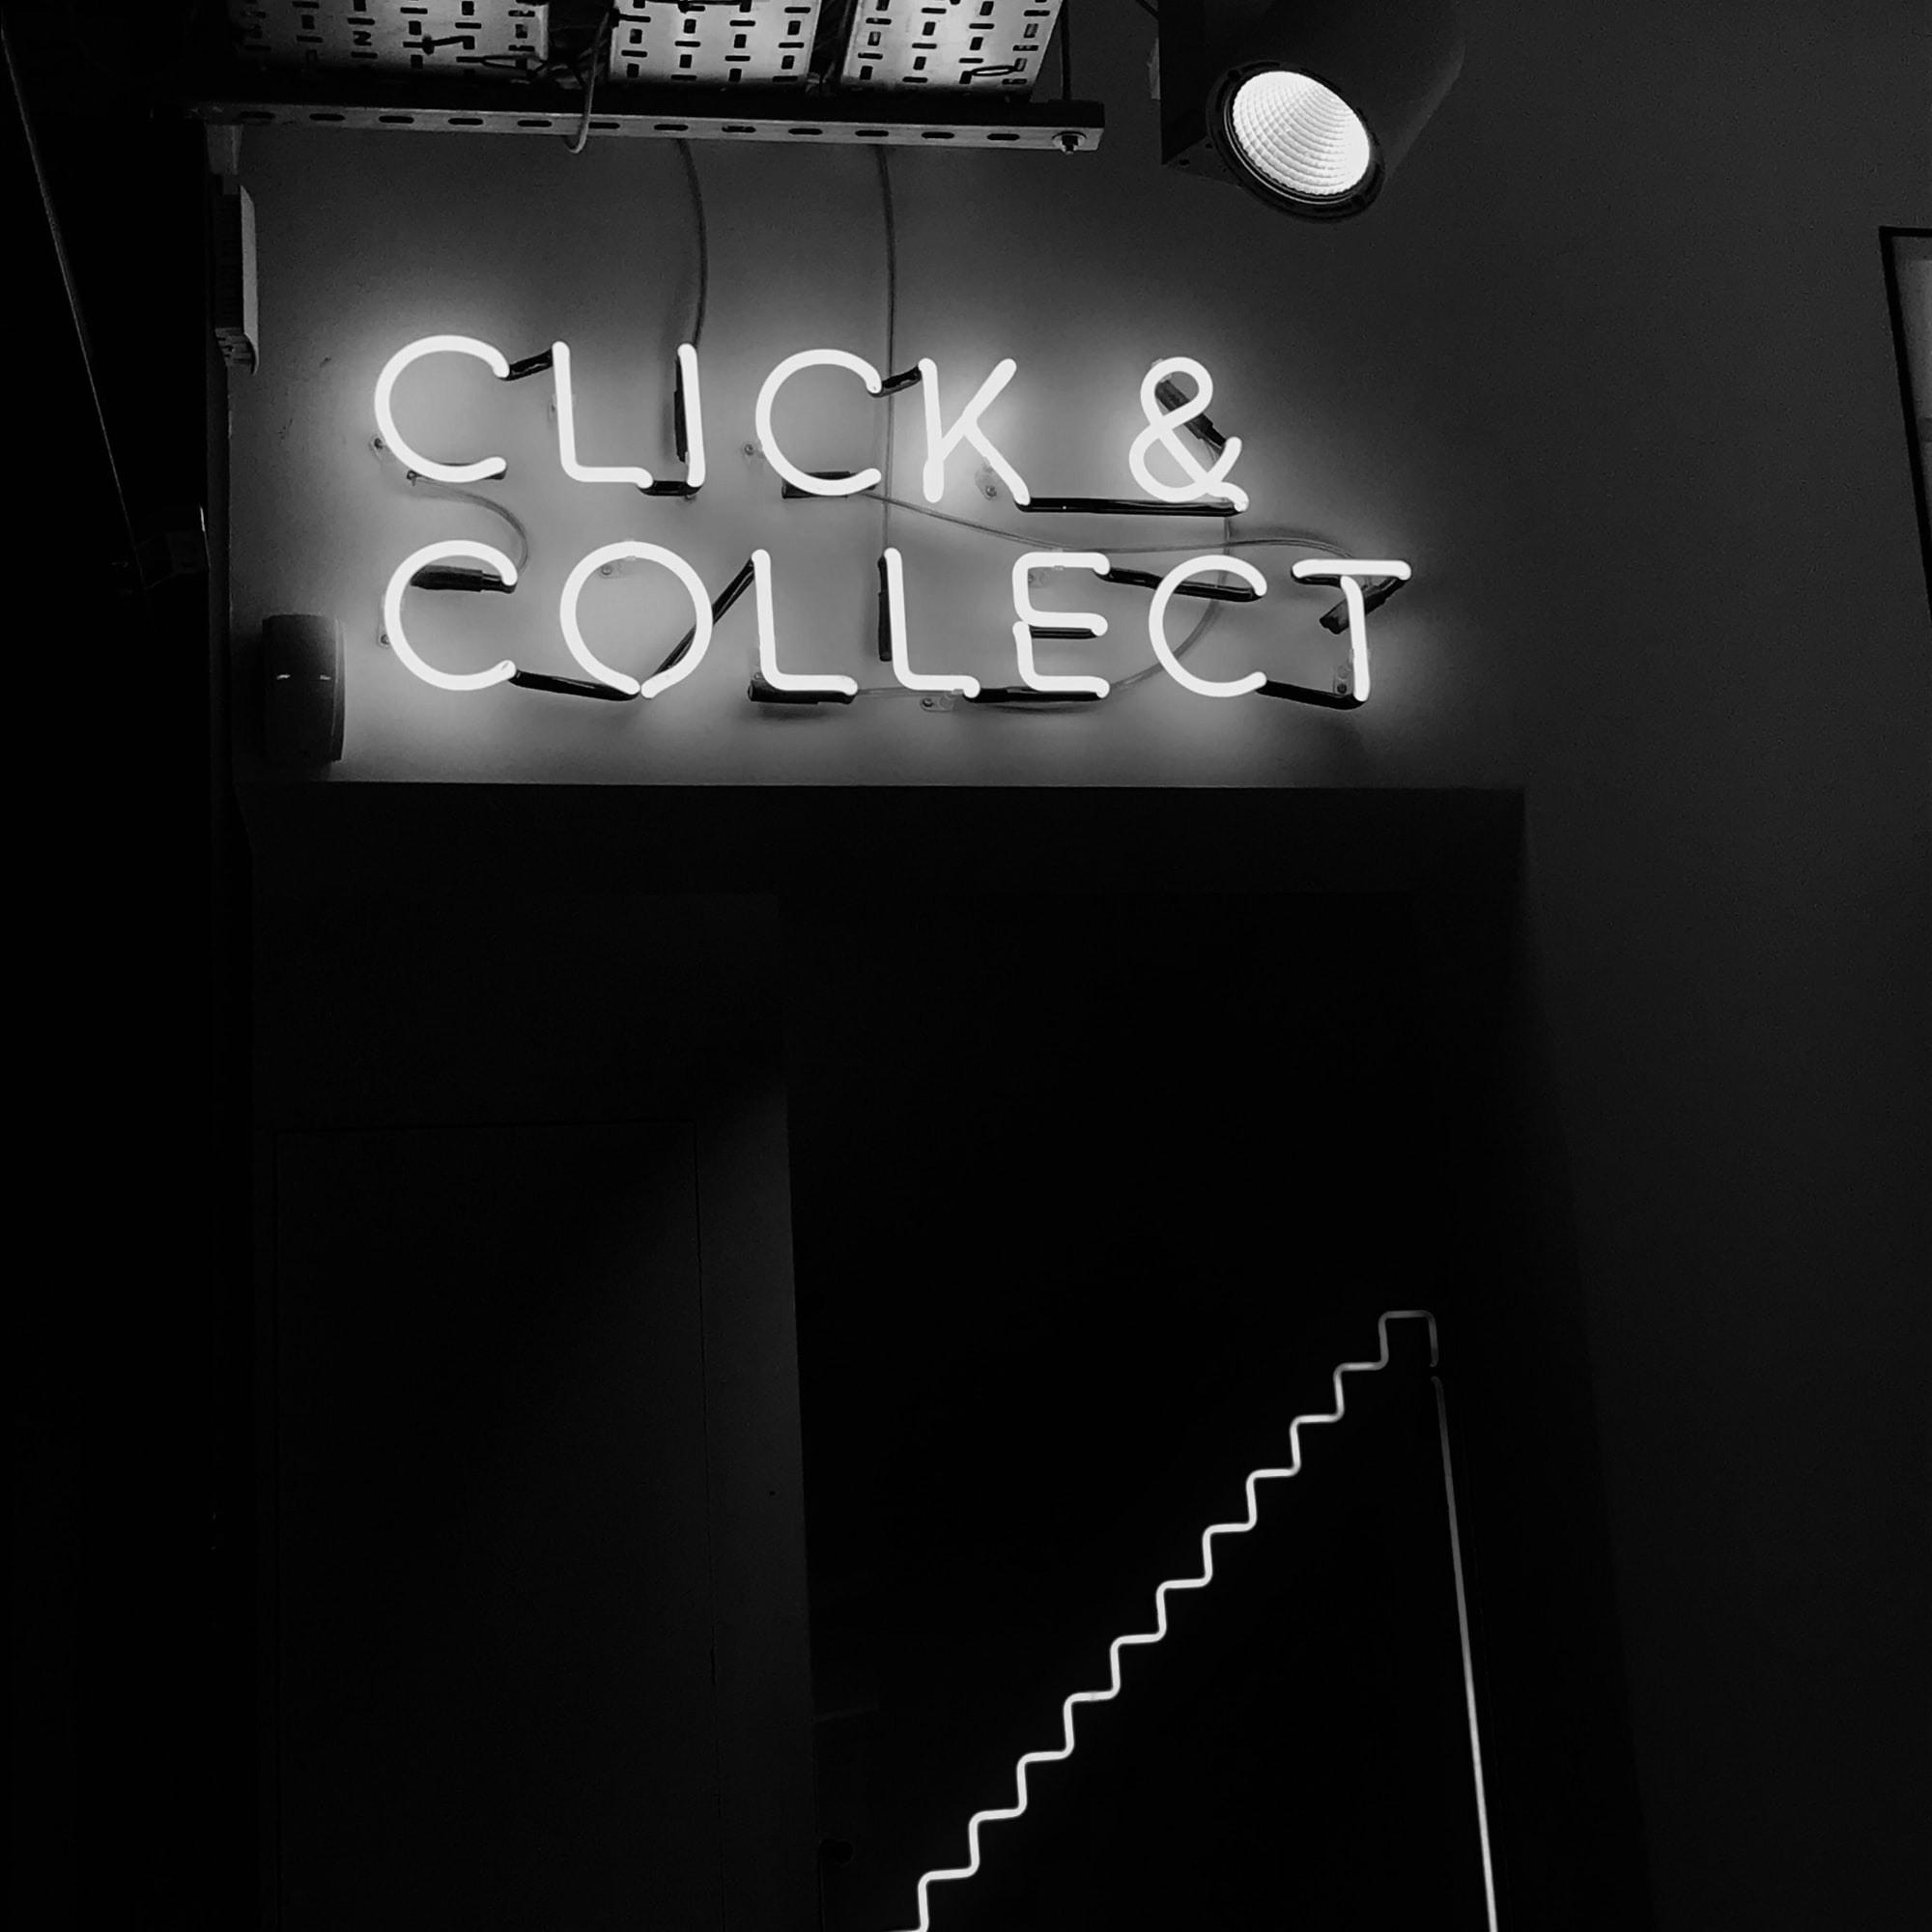 """Me and a mate were browsing the shops around Carnaby Street, as we entered a shoe store called """"size?"""" I saw this sign and immediately fell for the neon graphics. I'm a sucker for it, so I grab every opportunity I can to capture motives like these."""